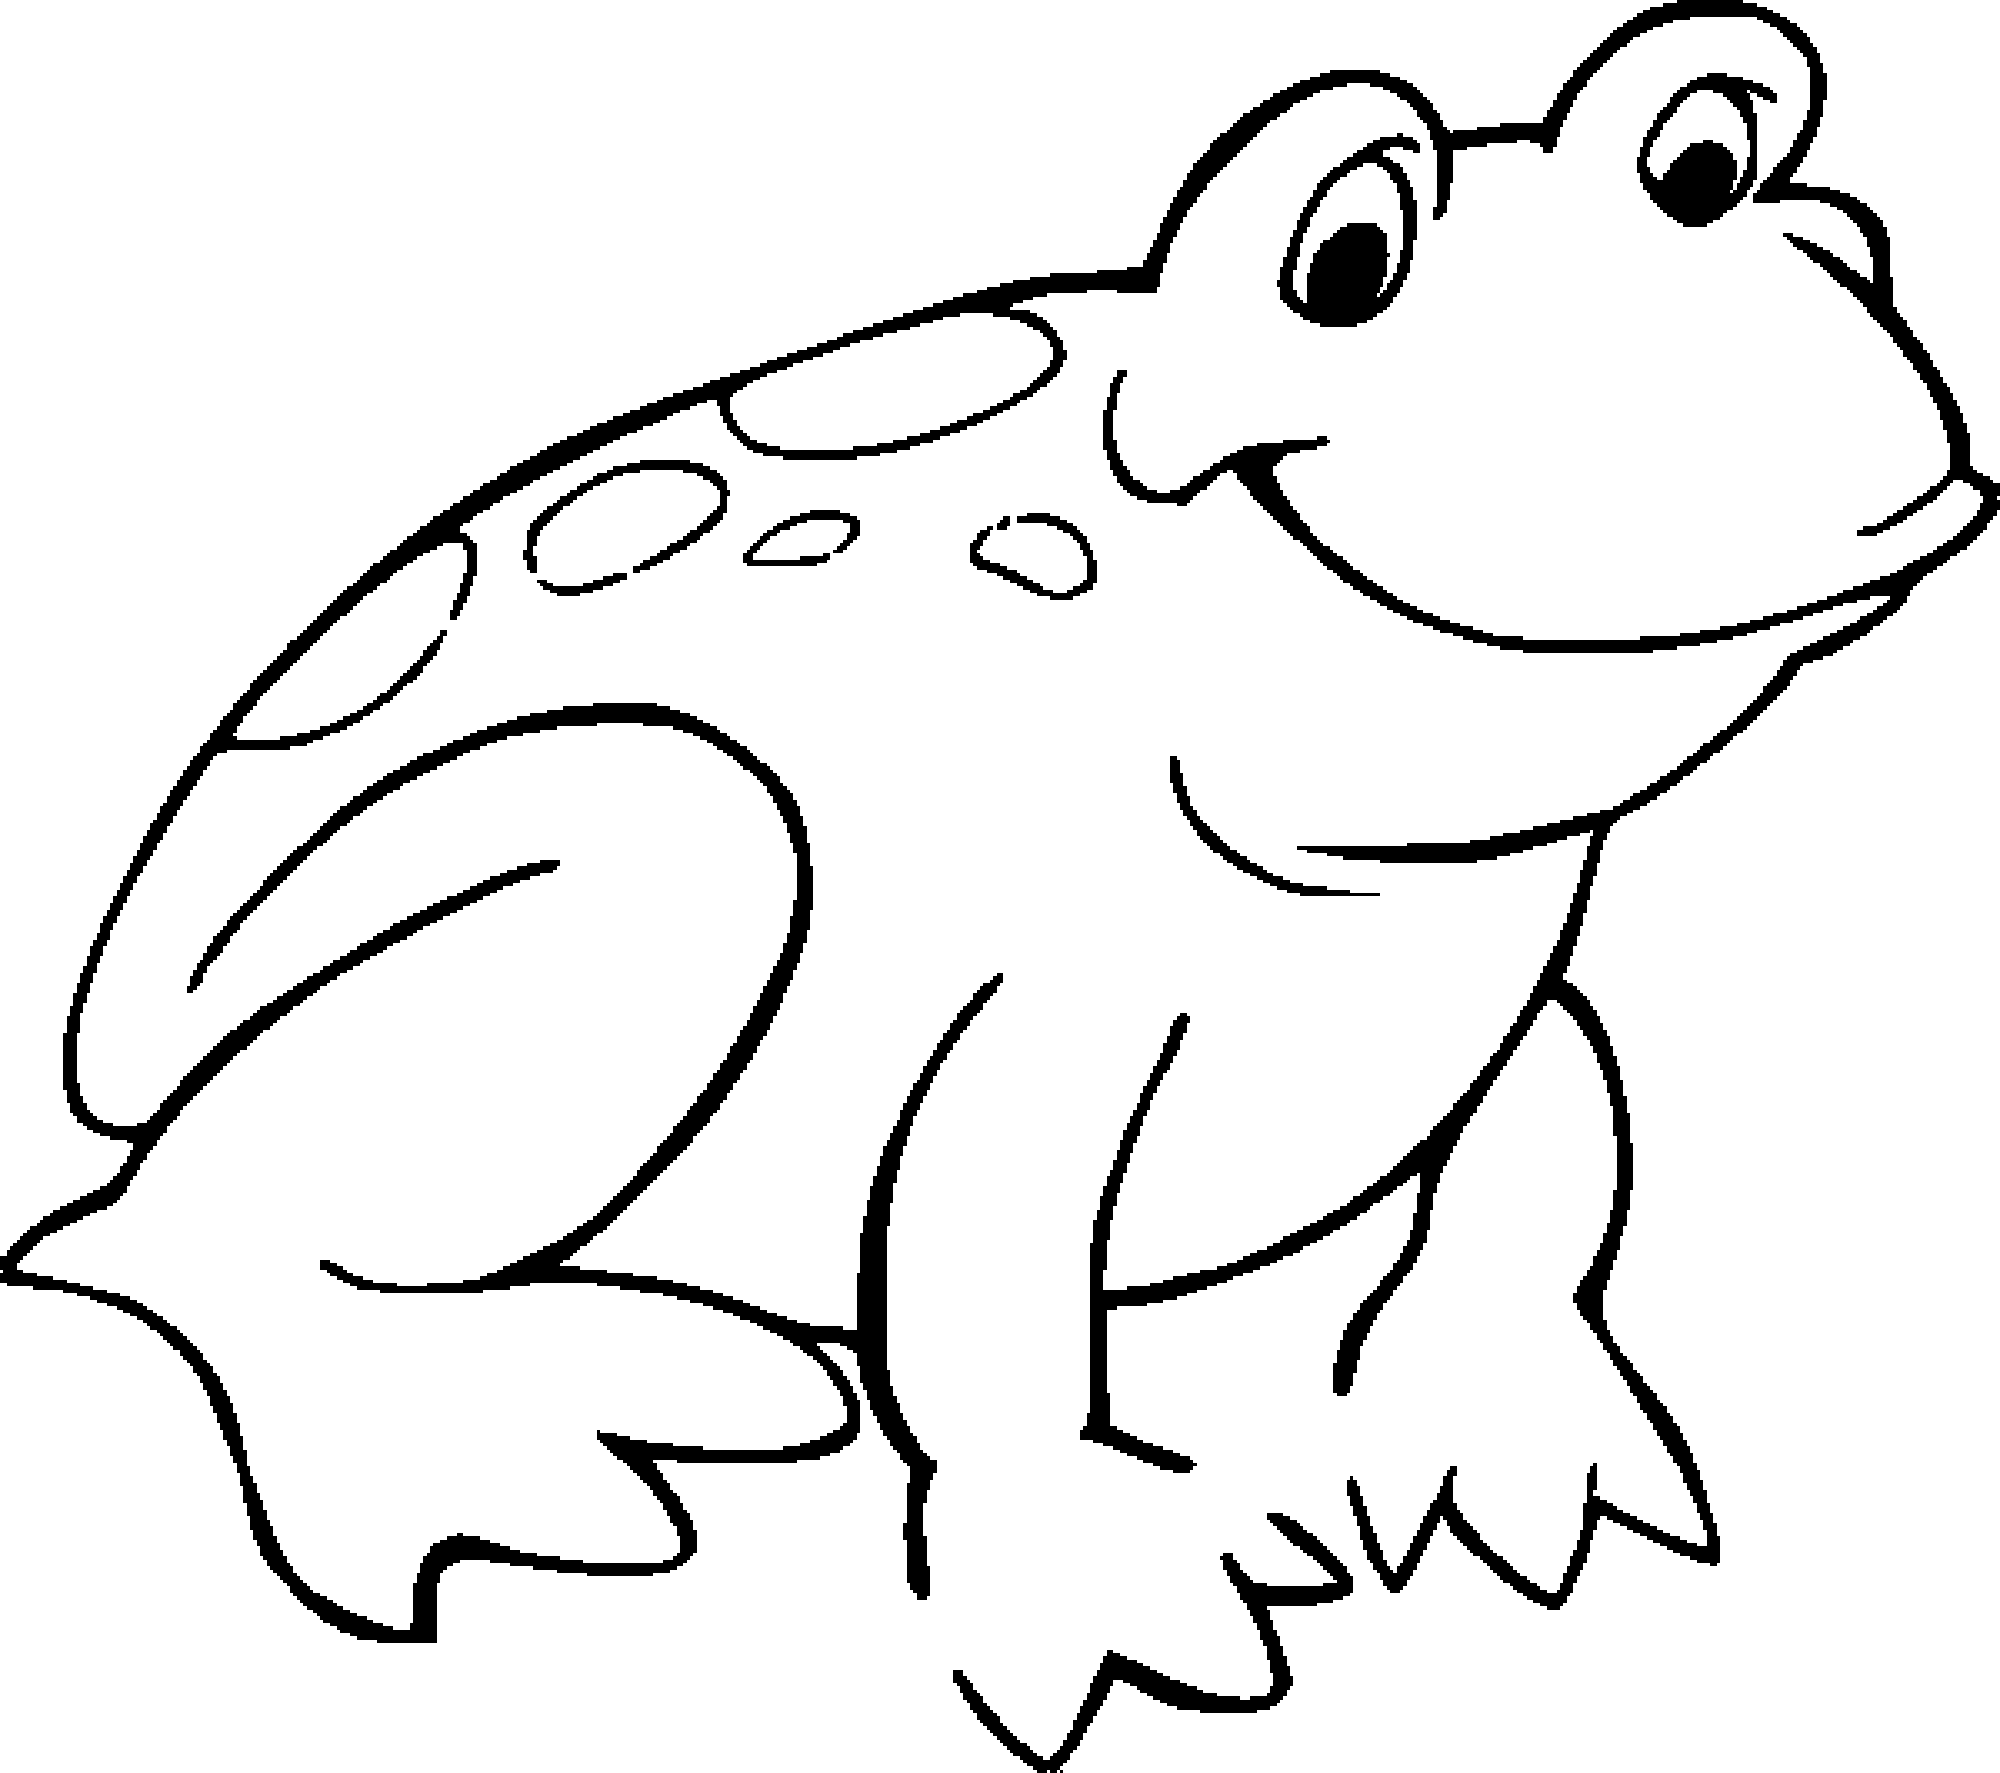 coloring images of frog frogs coloring pages to download and print for free frog coloring images of